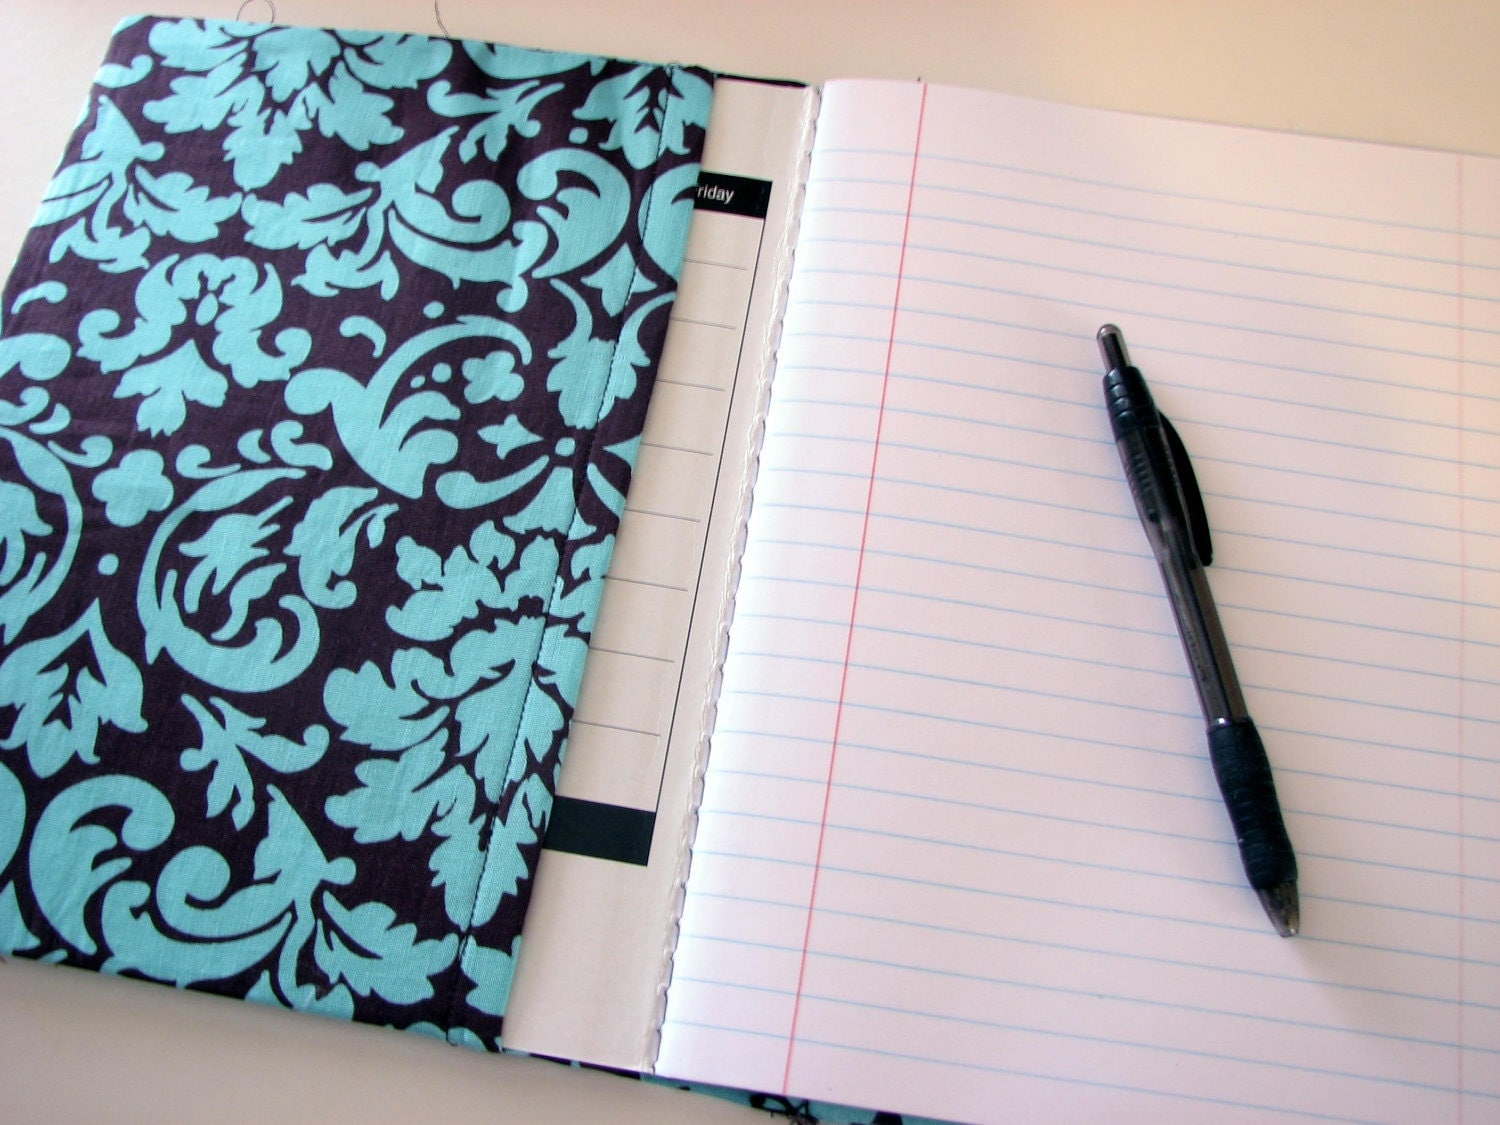 Notebook Cover Ideas : Composition notebook cover ideas chocolate and teal